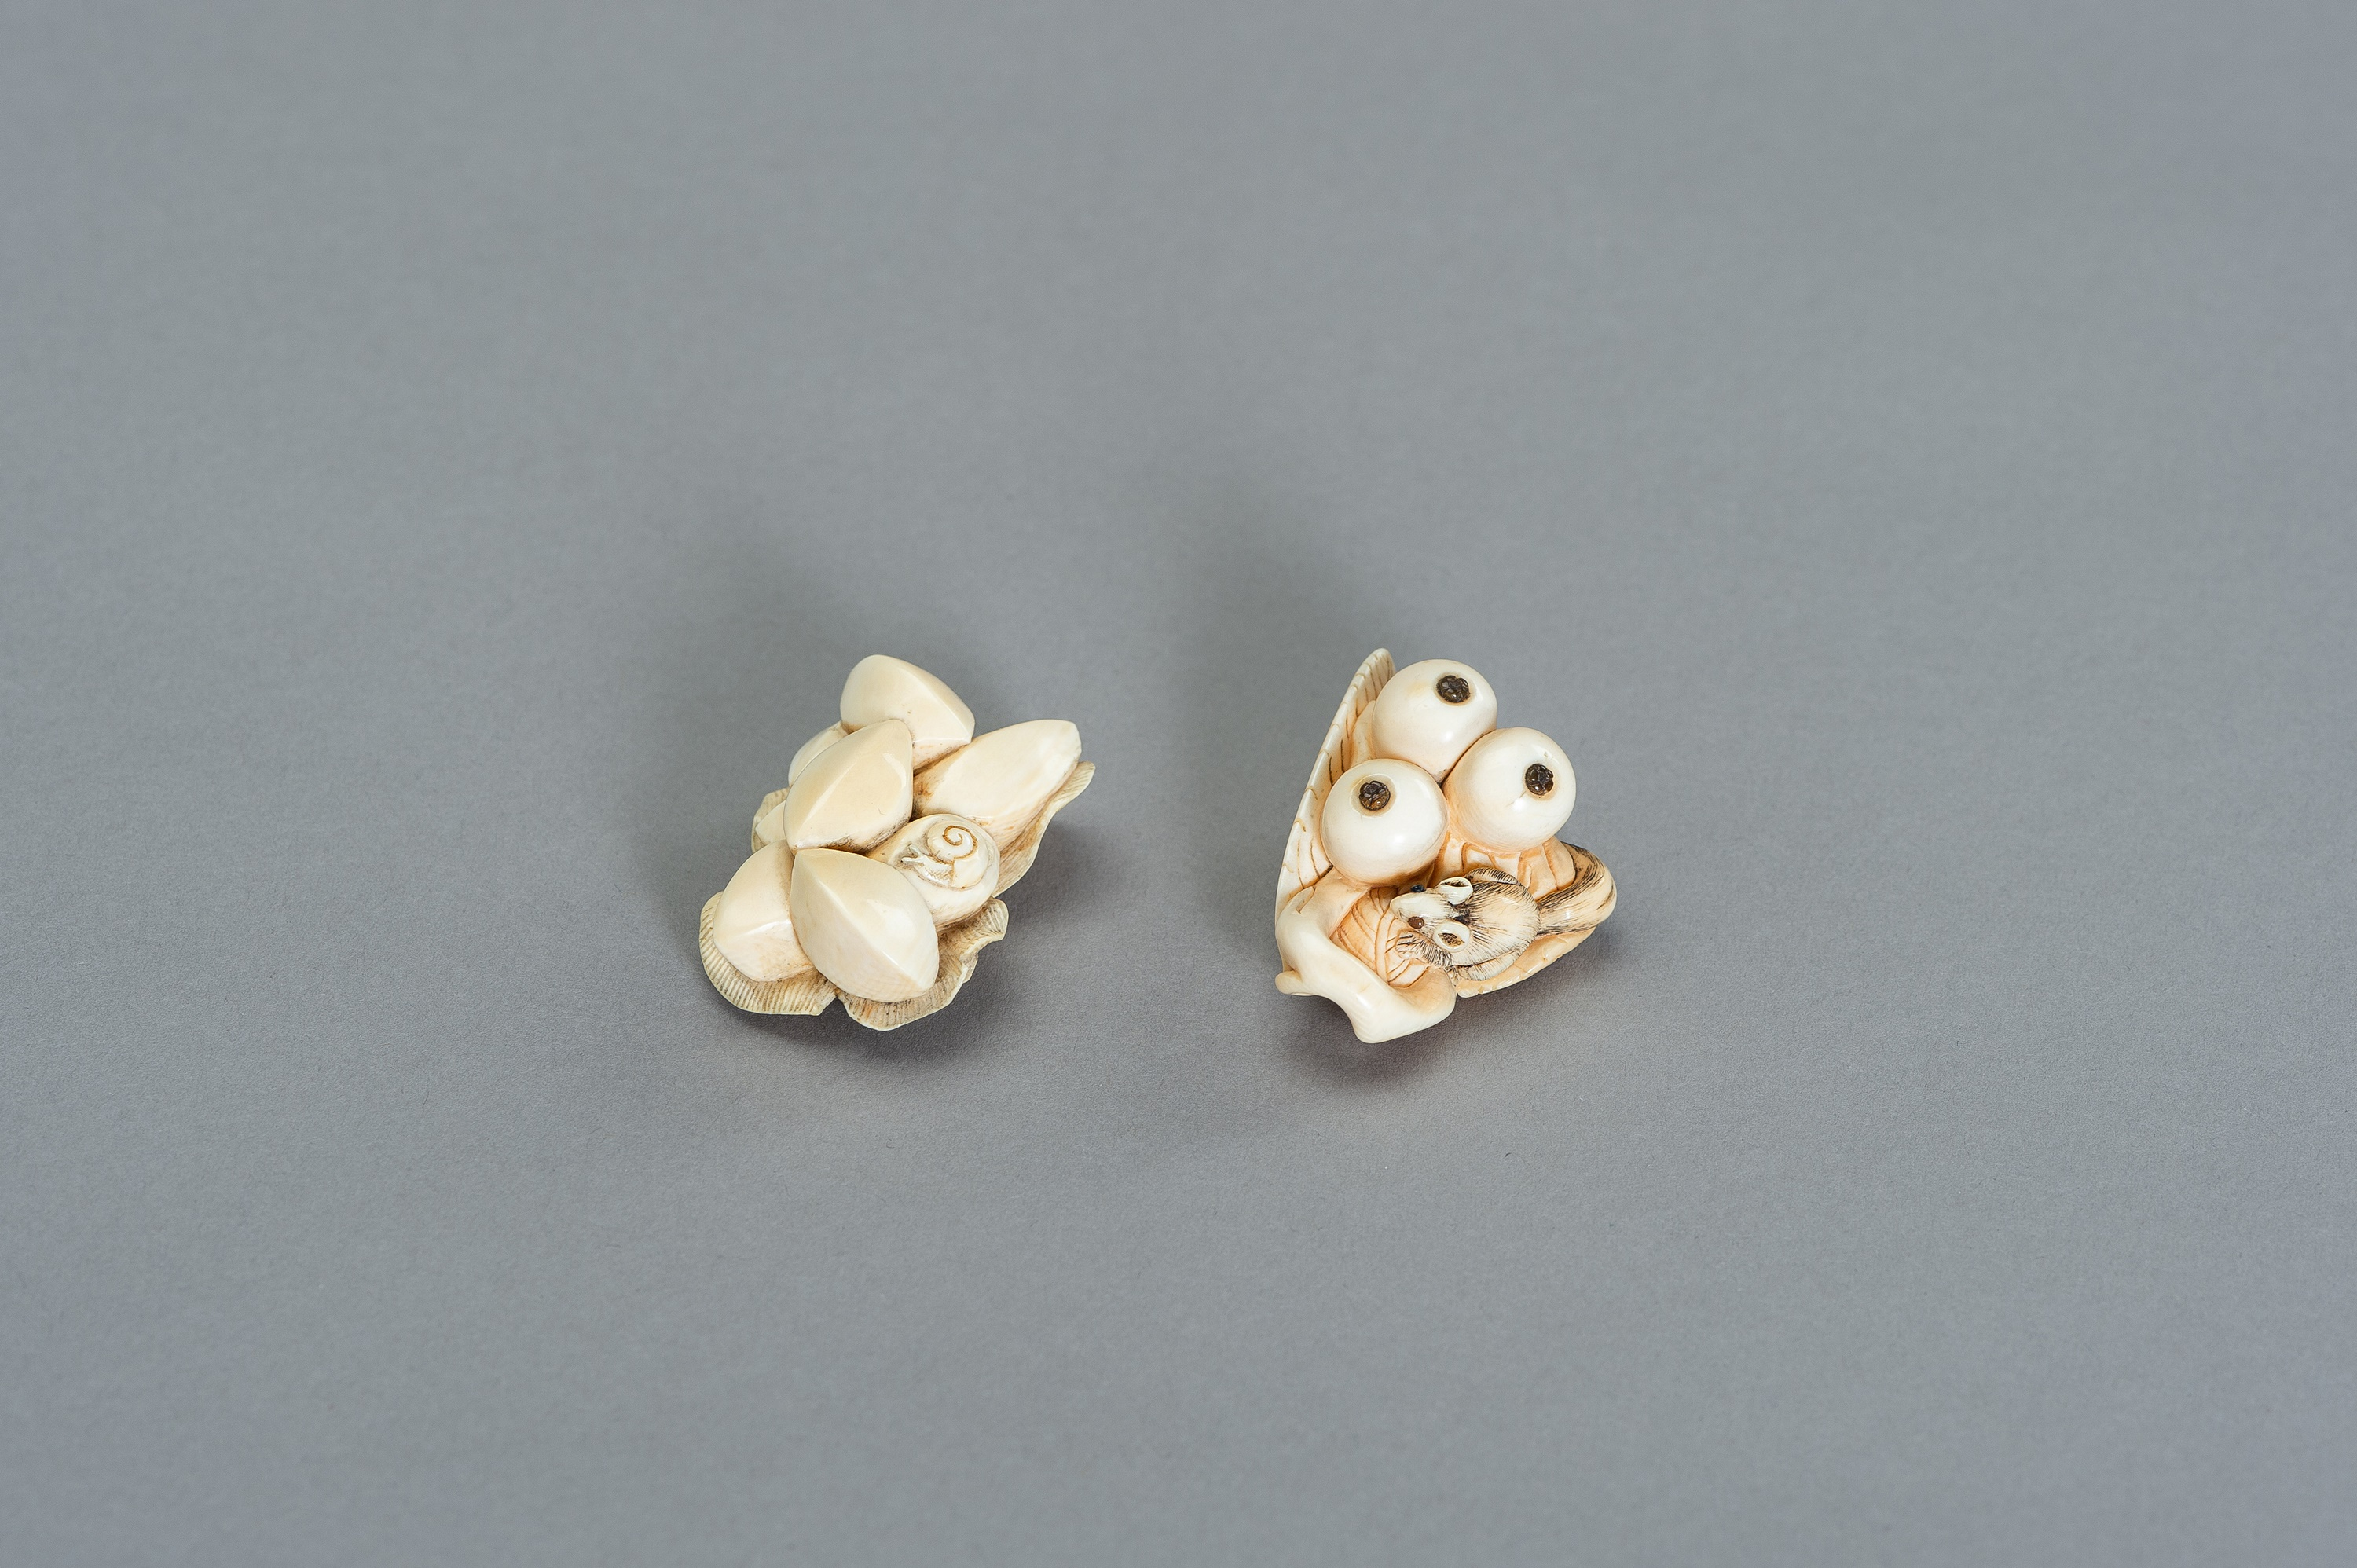 TWO STILL LIFE IVORY NETSUKE WITH SMALL CREATURES - Image 3 of 3